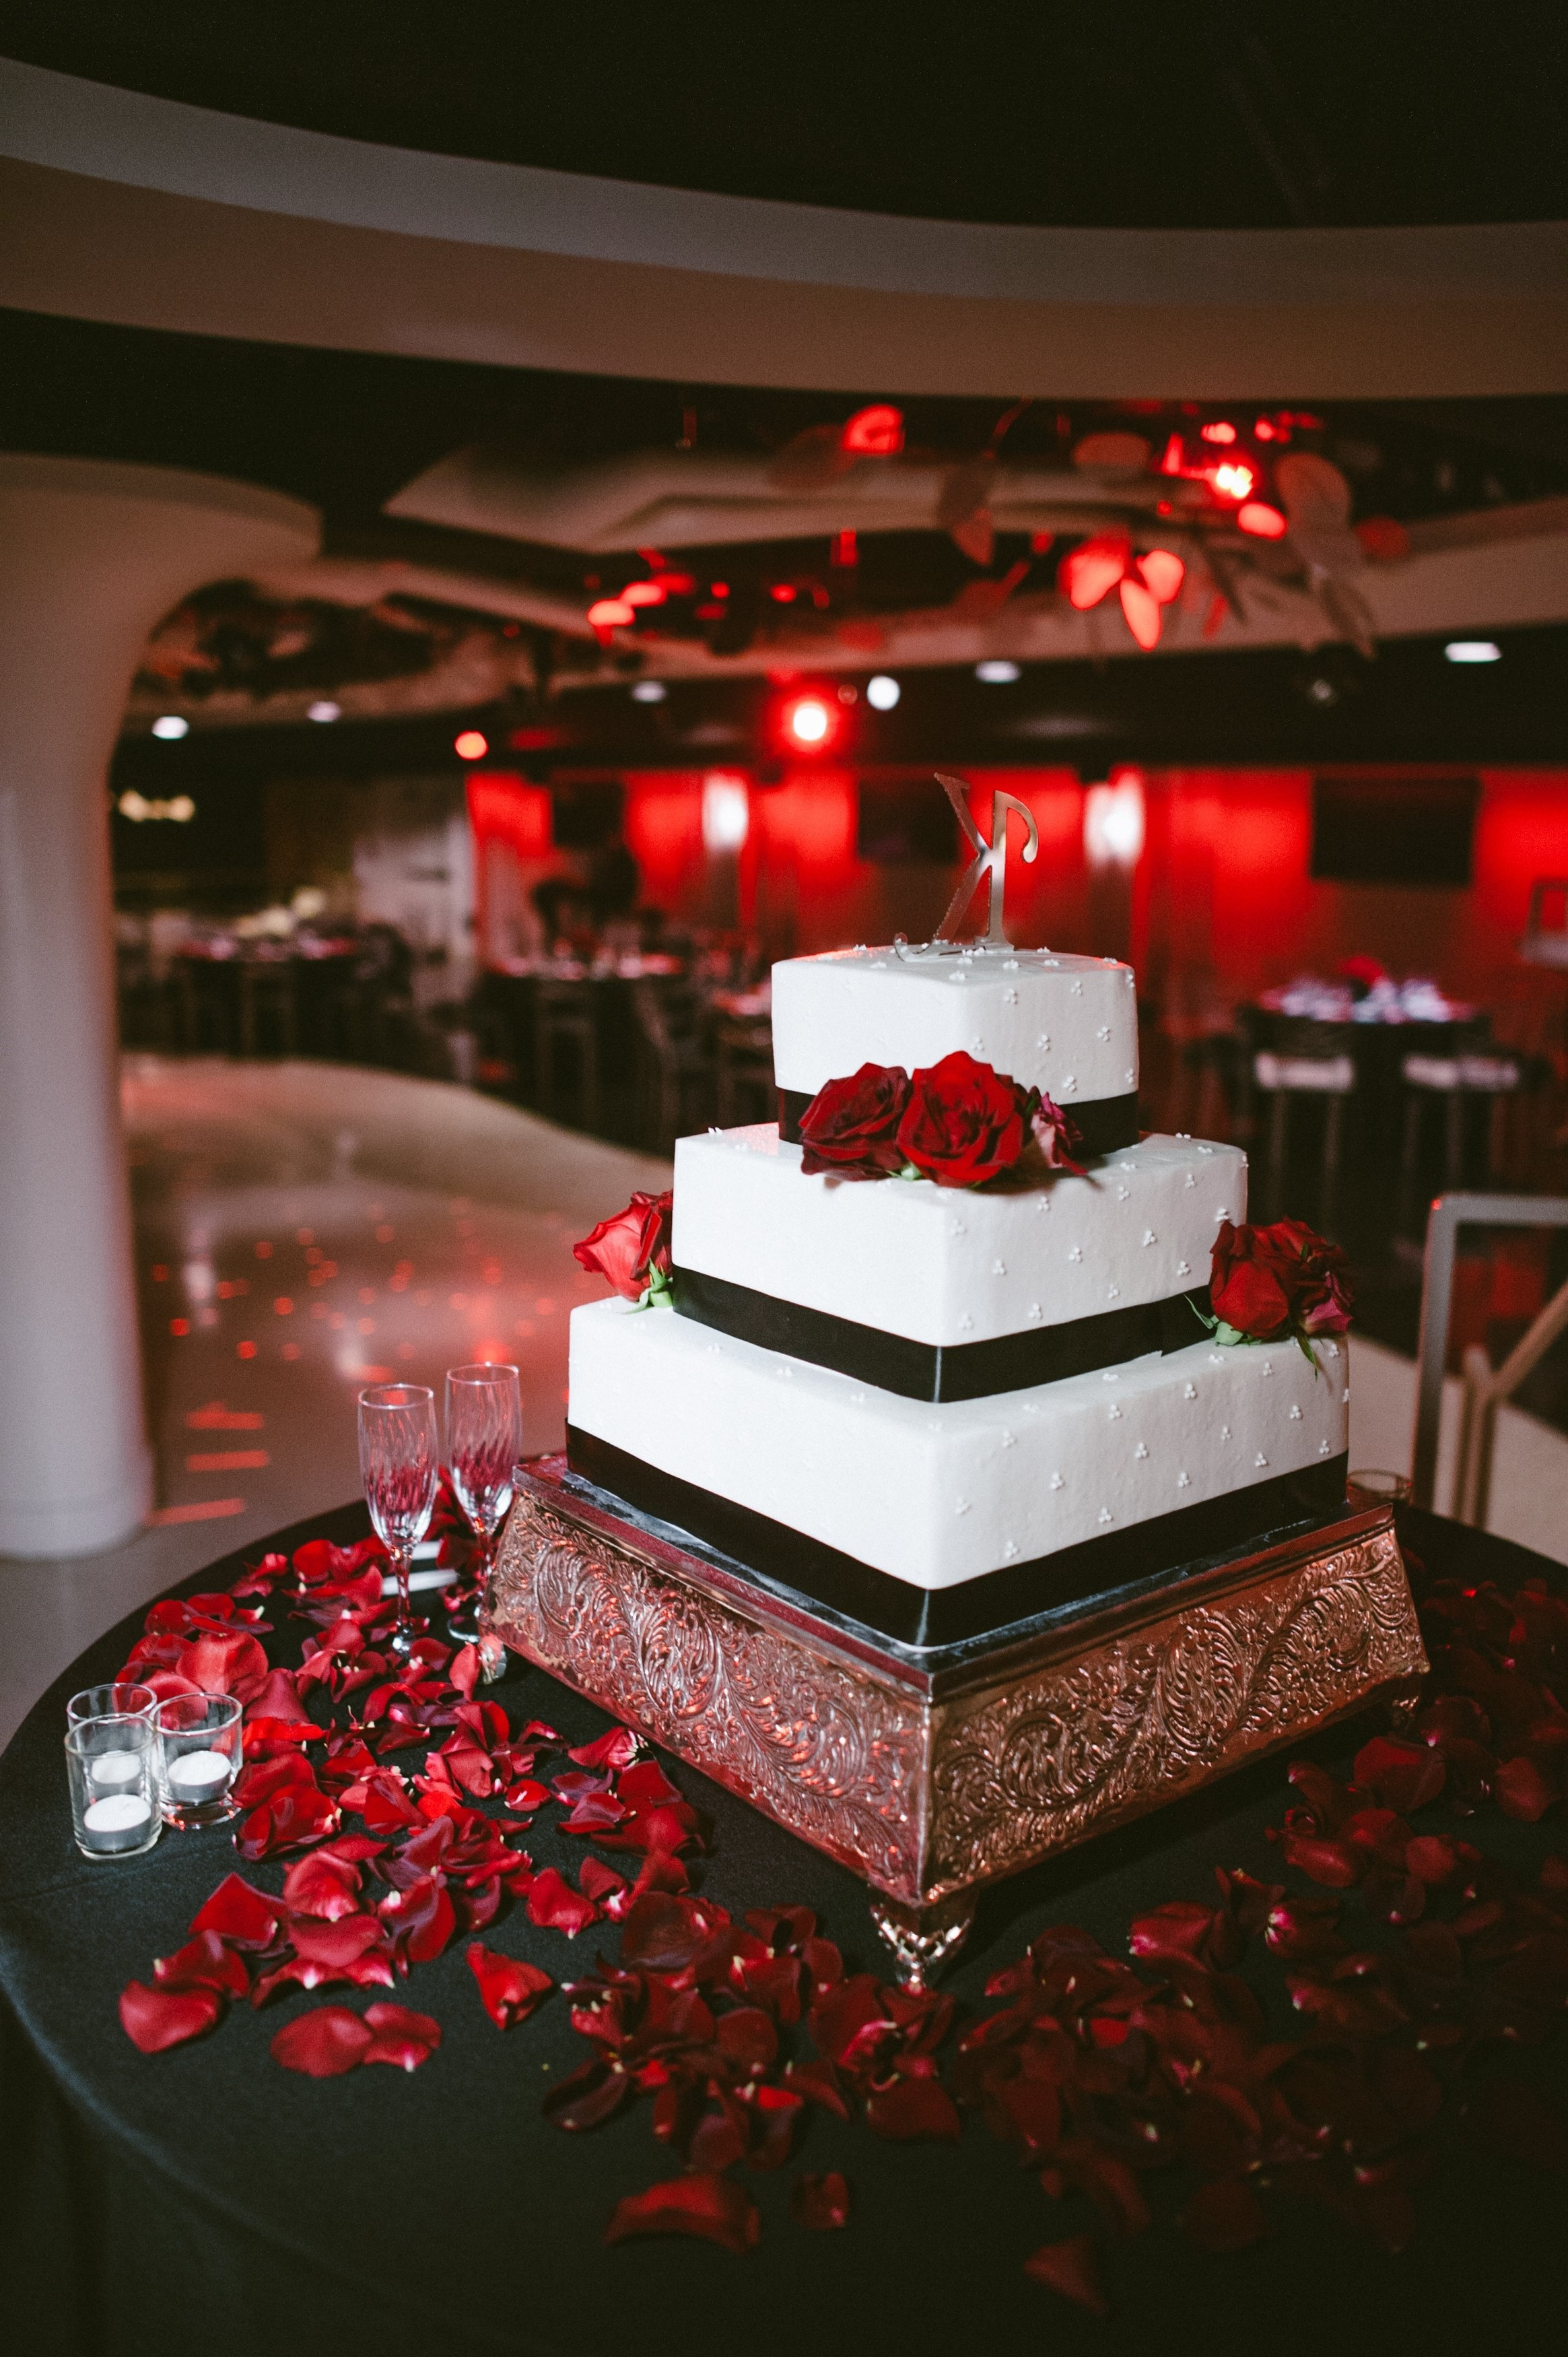 10 Attractive Red And Black Wedding Ideas emejing red black and white wedding cake gallery styles ideas 2021